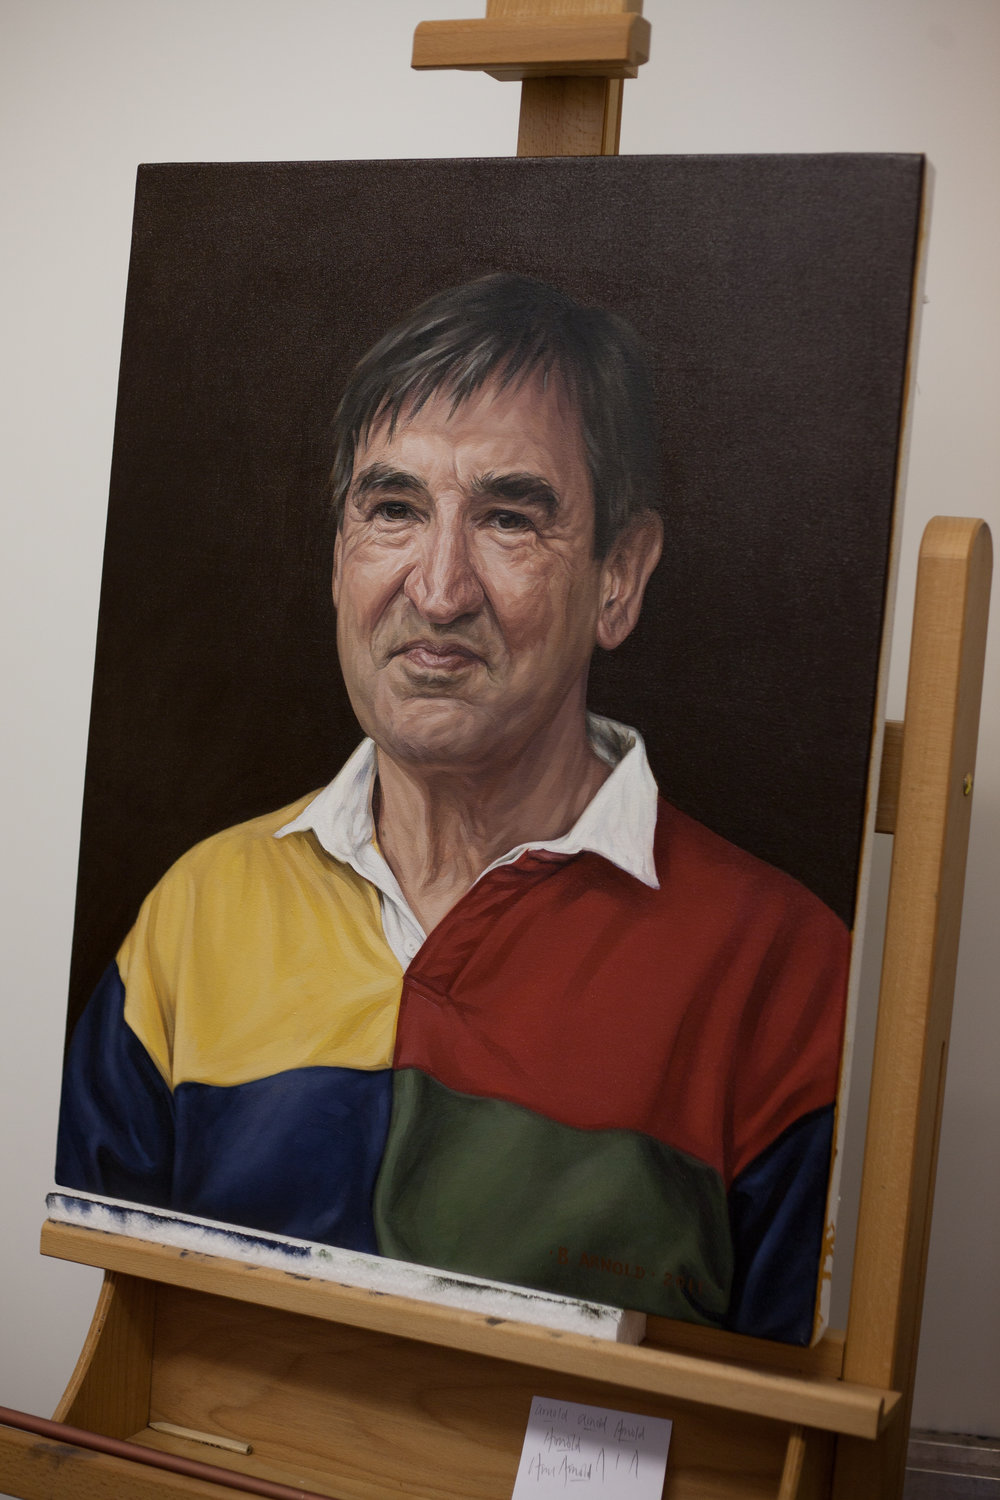 'Dr. Ian Kerr' - 2011 - oil on canvas